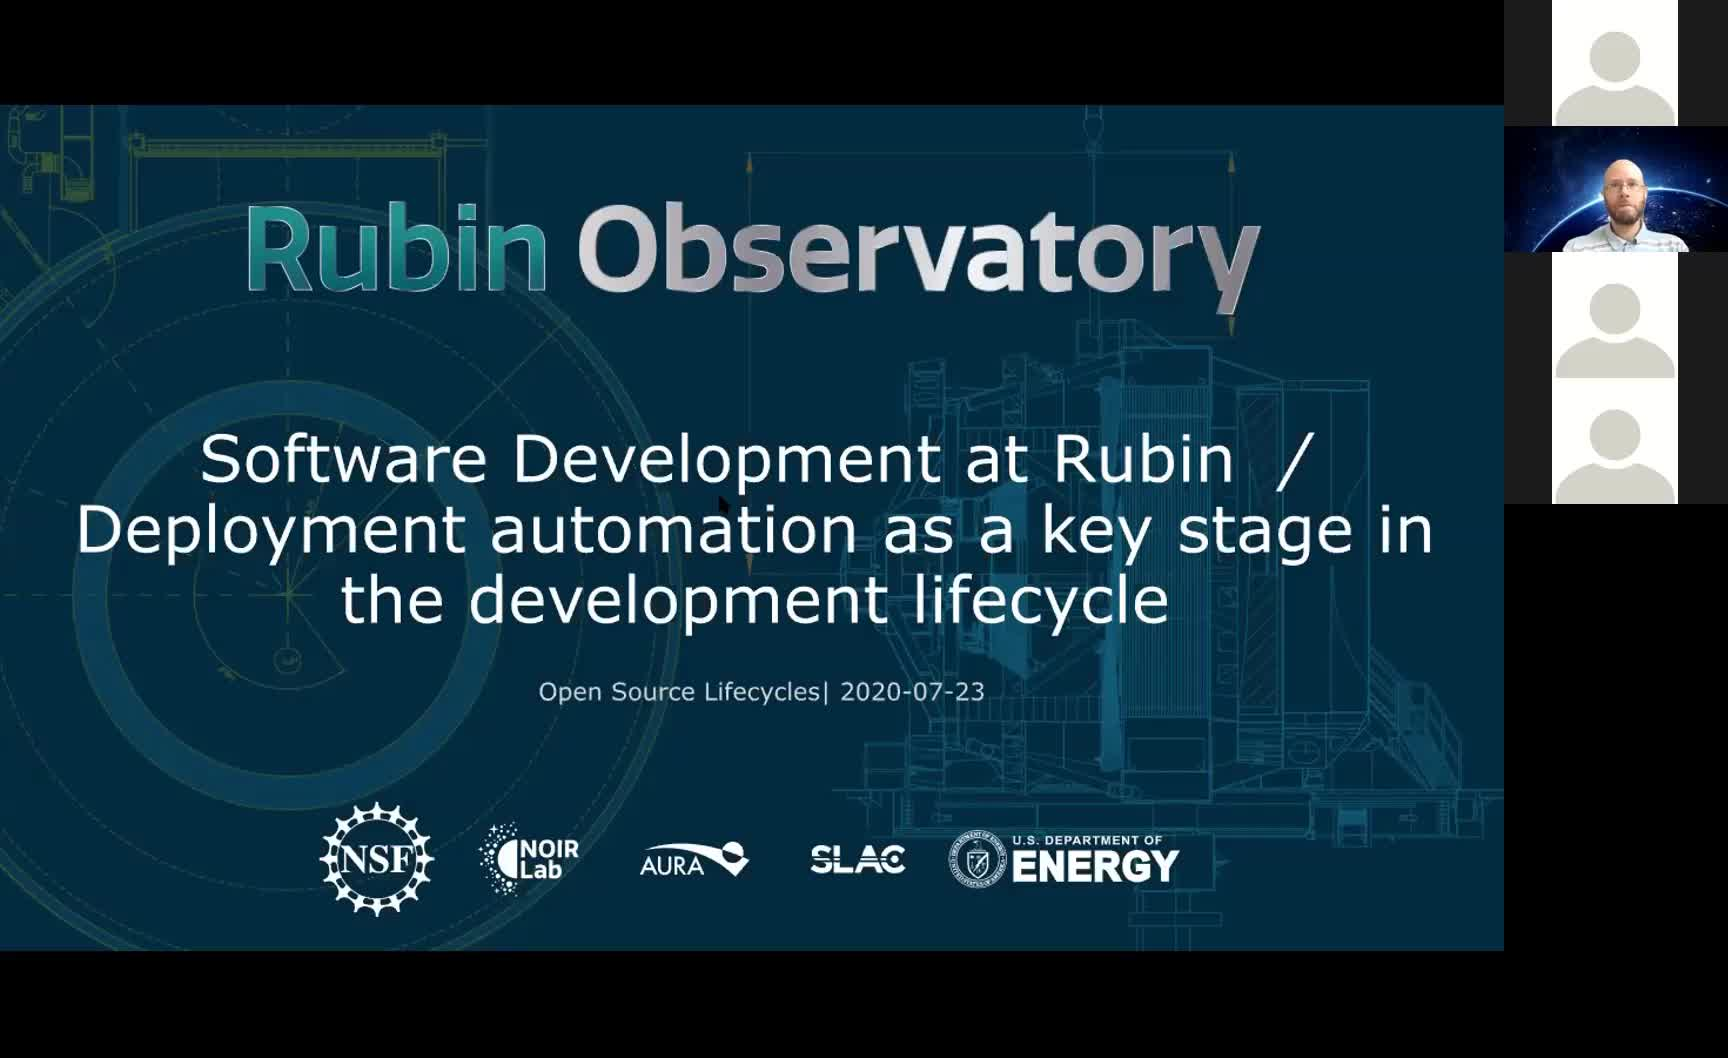 Deployment automation as a key stage in the development lifecycle preview image